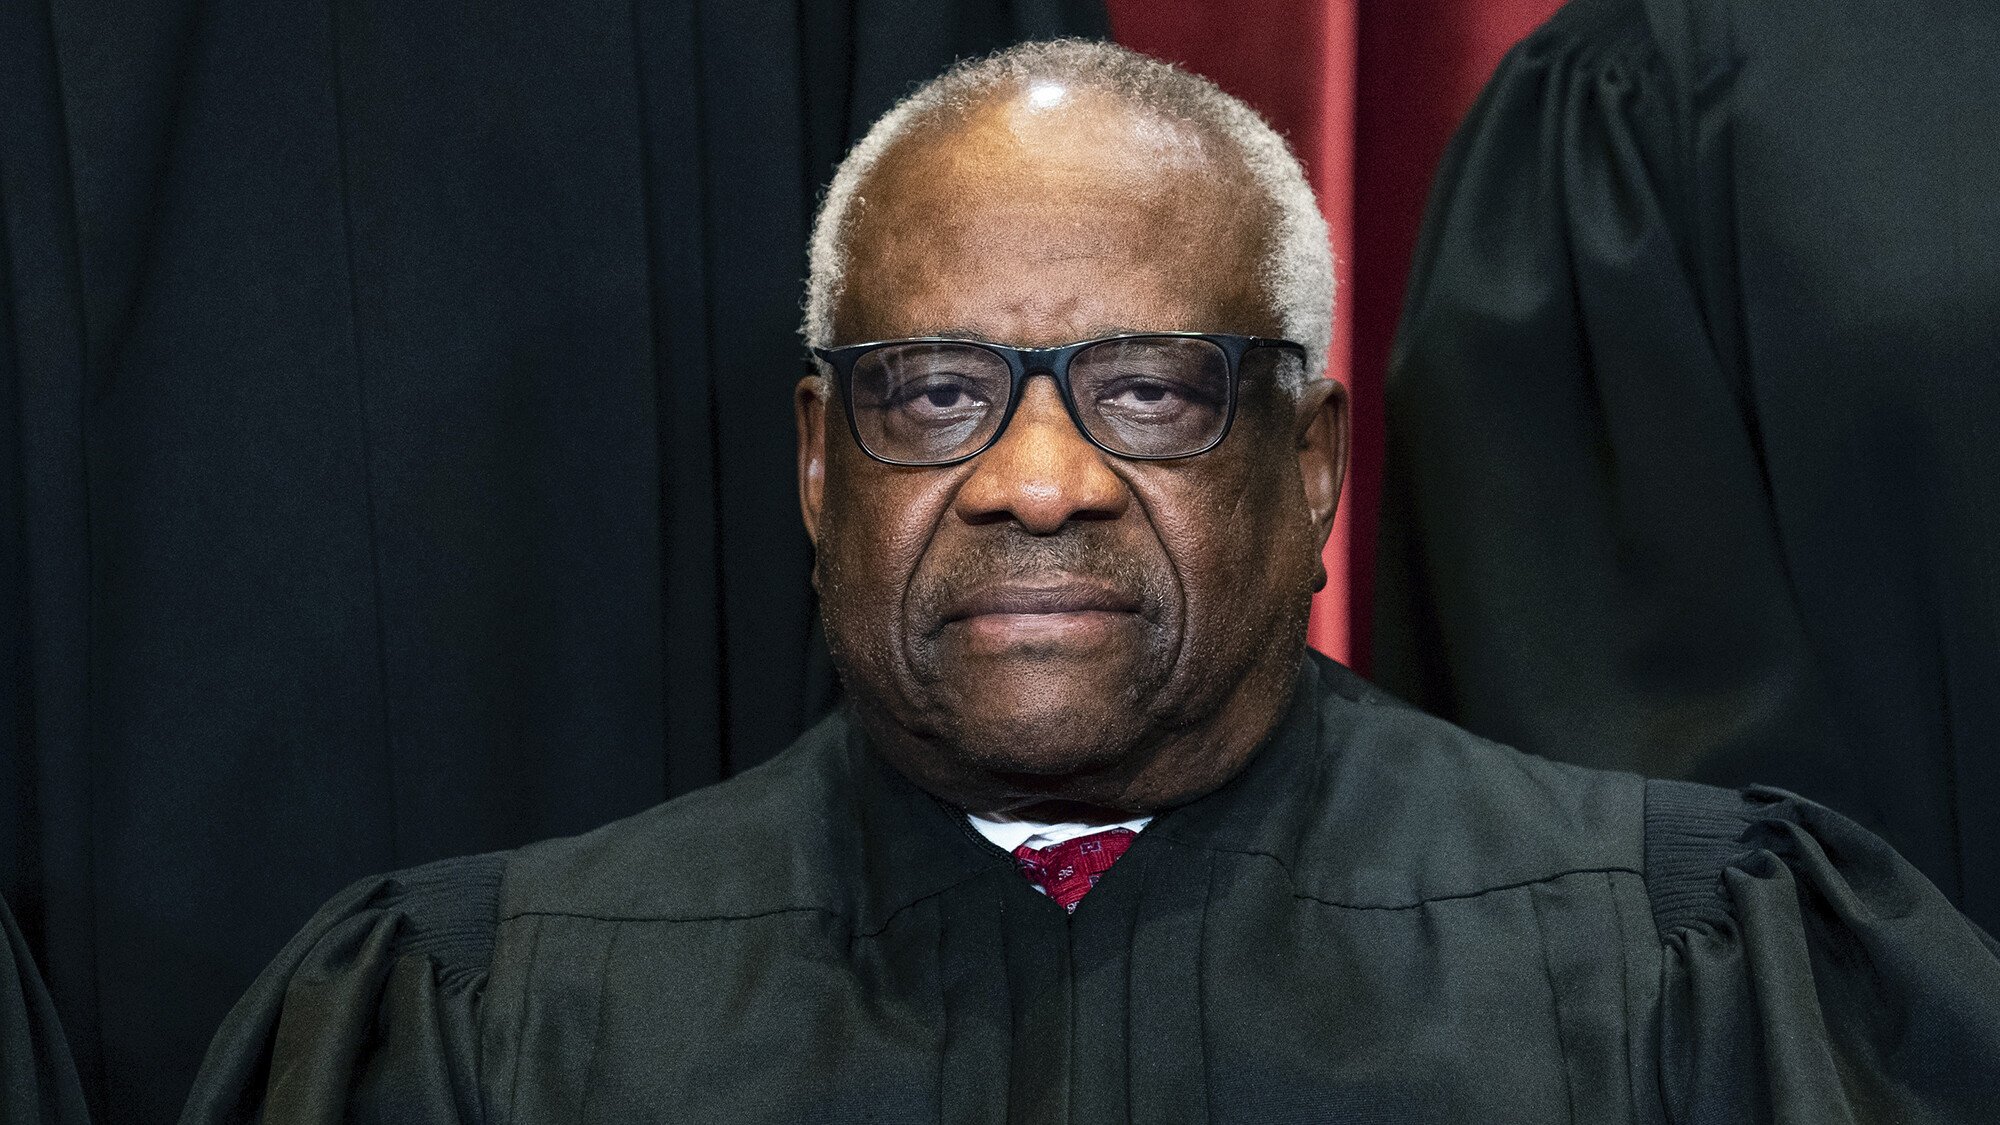 Justice Clarence Thomas asks the first question and other highlights from opening day at the Supreme Court